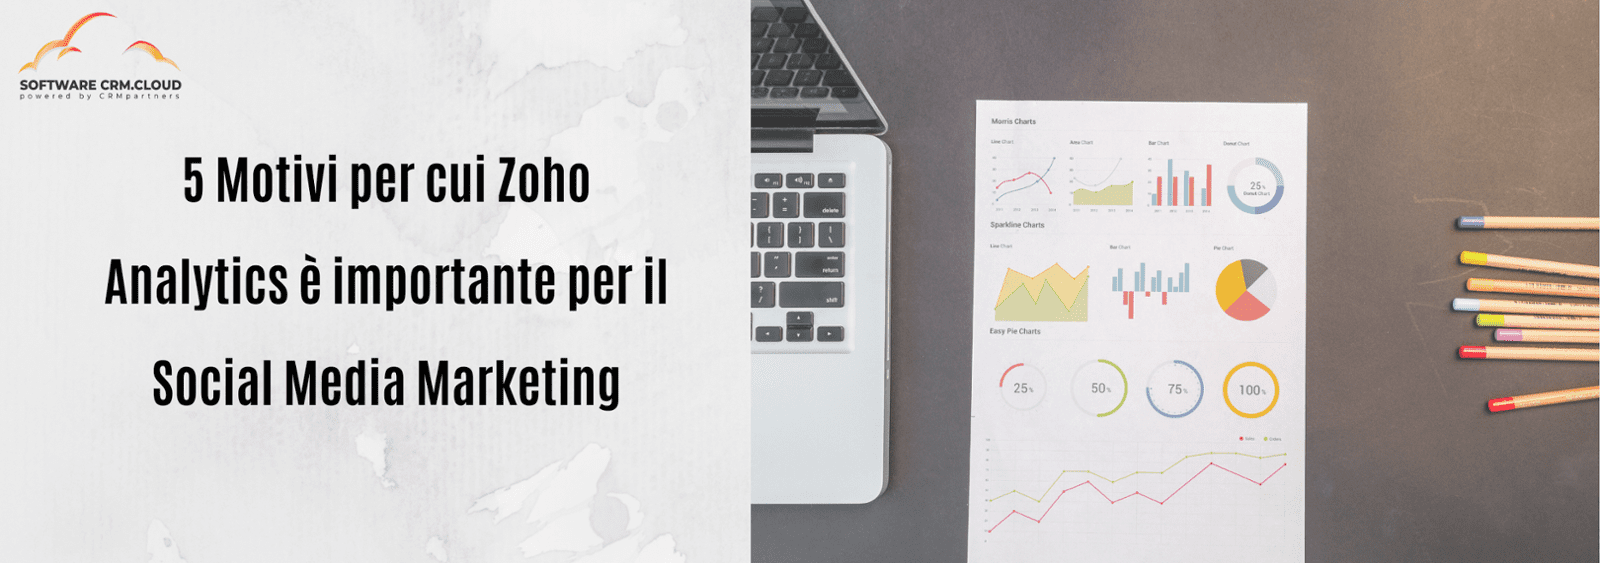 Social Media Marketing: 5 Motivi per cui Zoho Analytics è importante